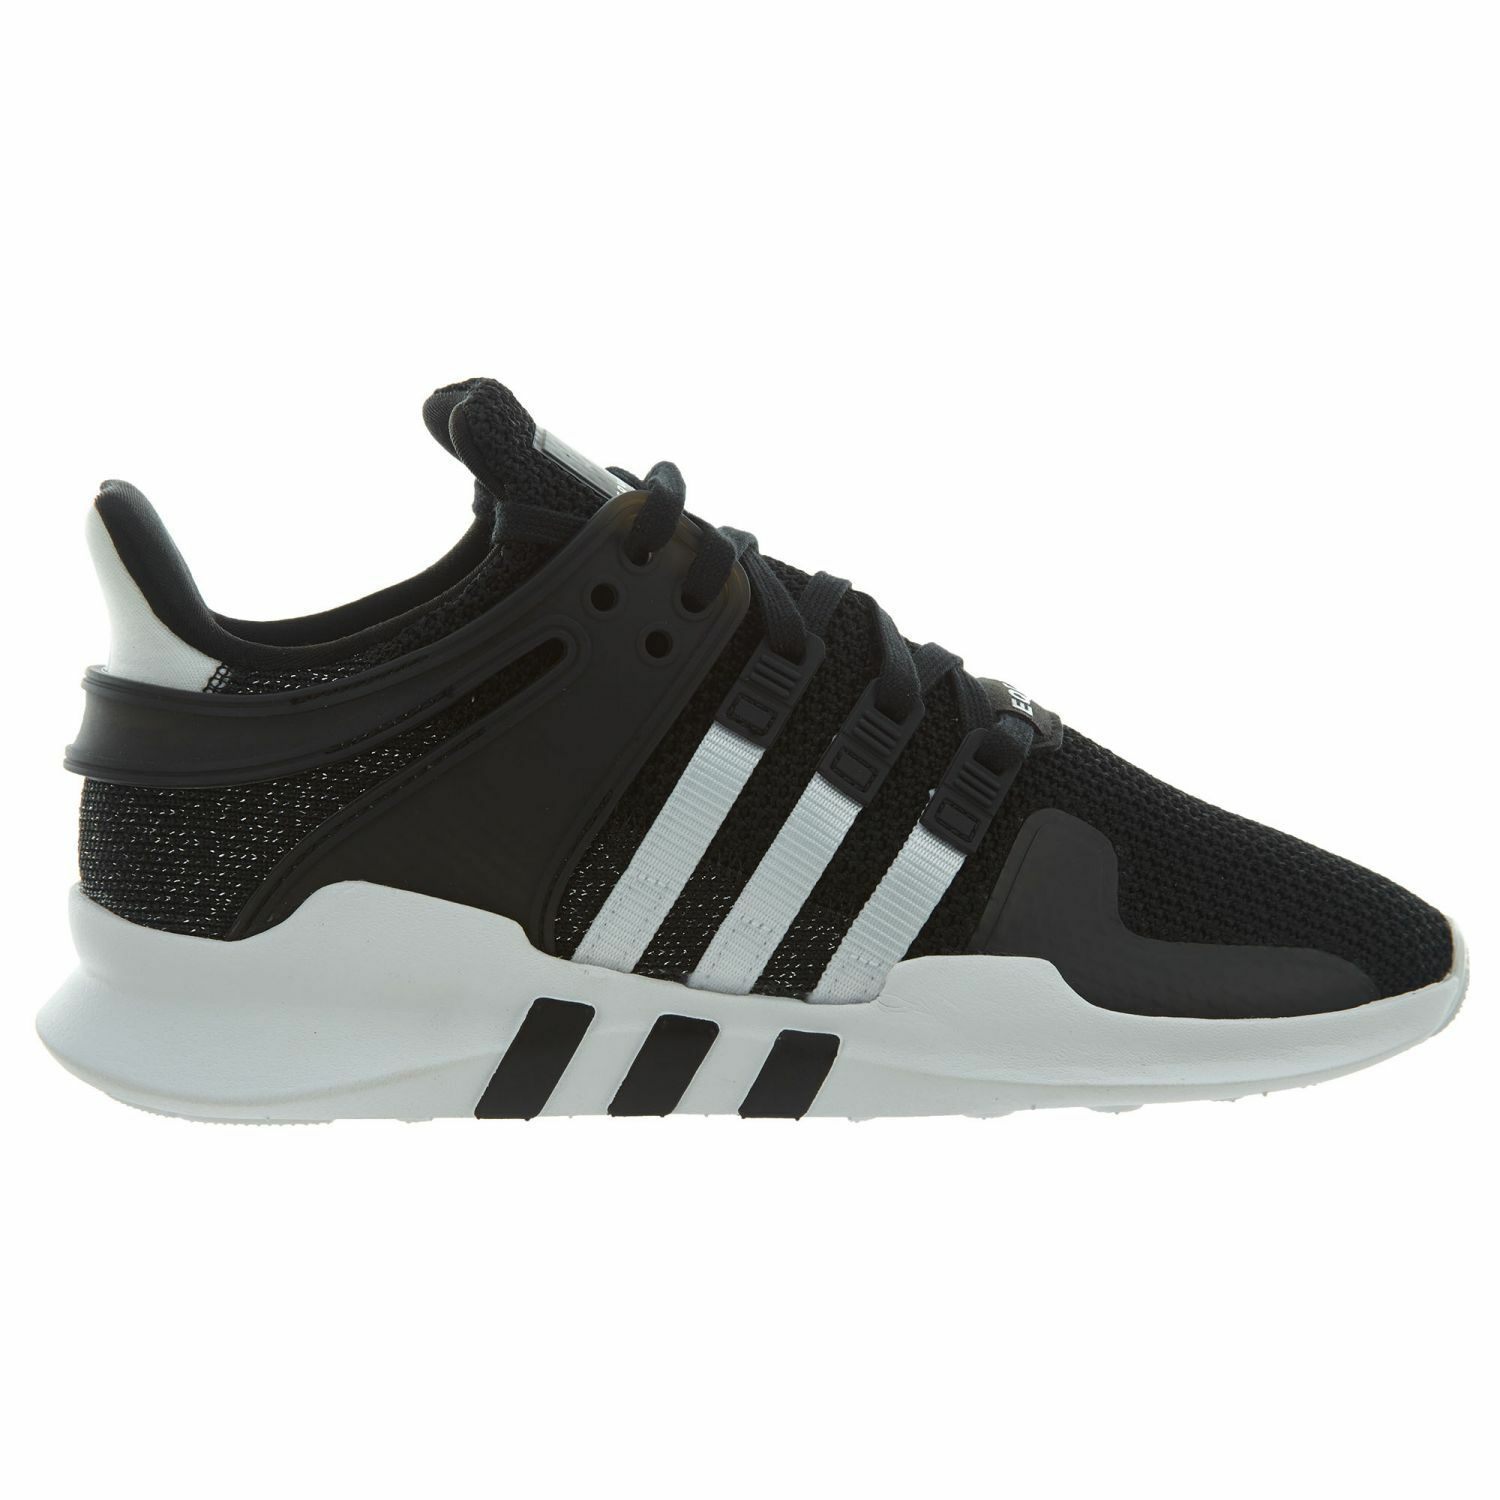 Adidas Eqt Support Adv Mesh Womens B37539 Black White Mesh Adv Running Shoes Size 8.5 1b287a